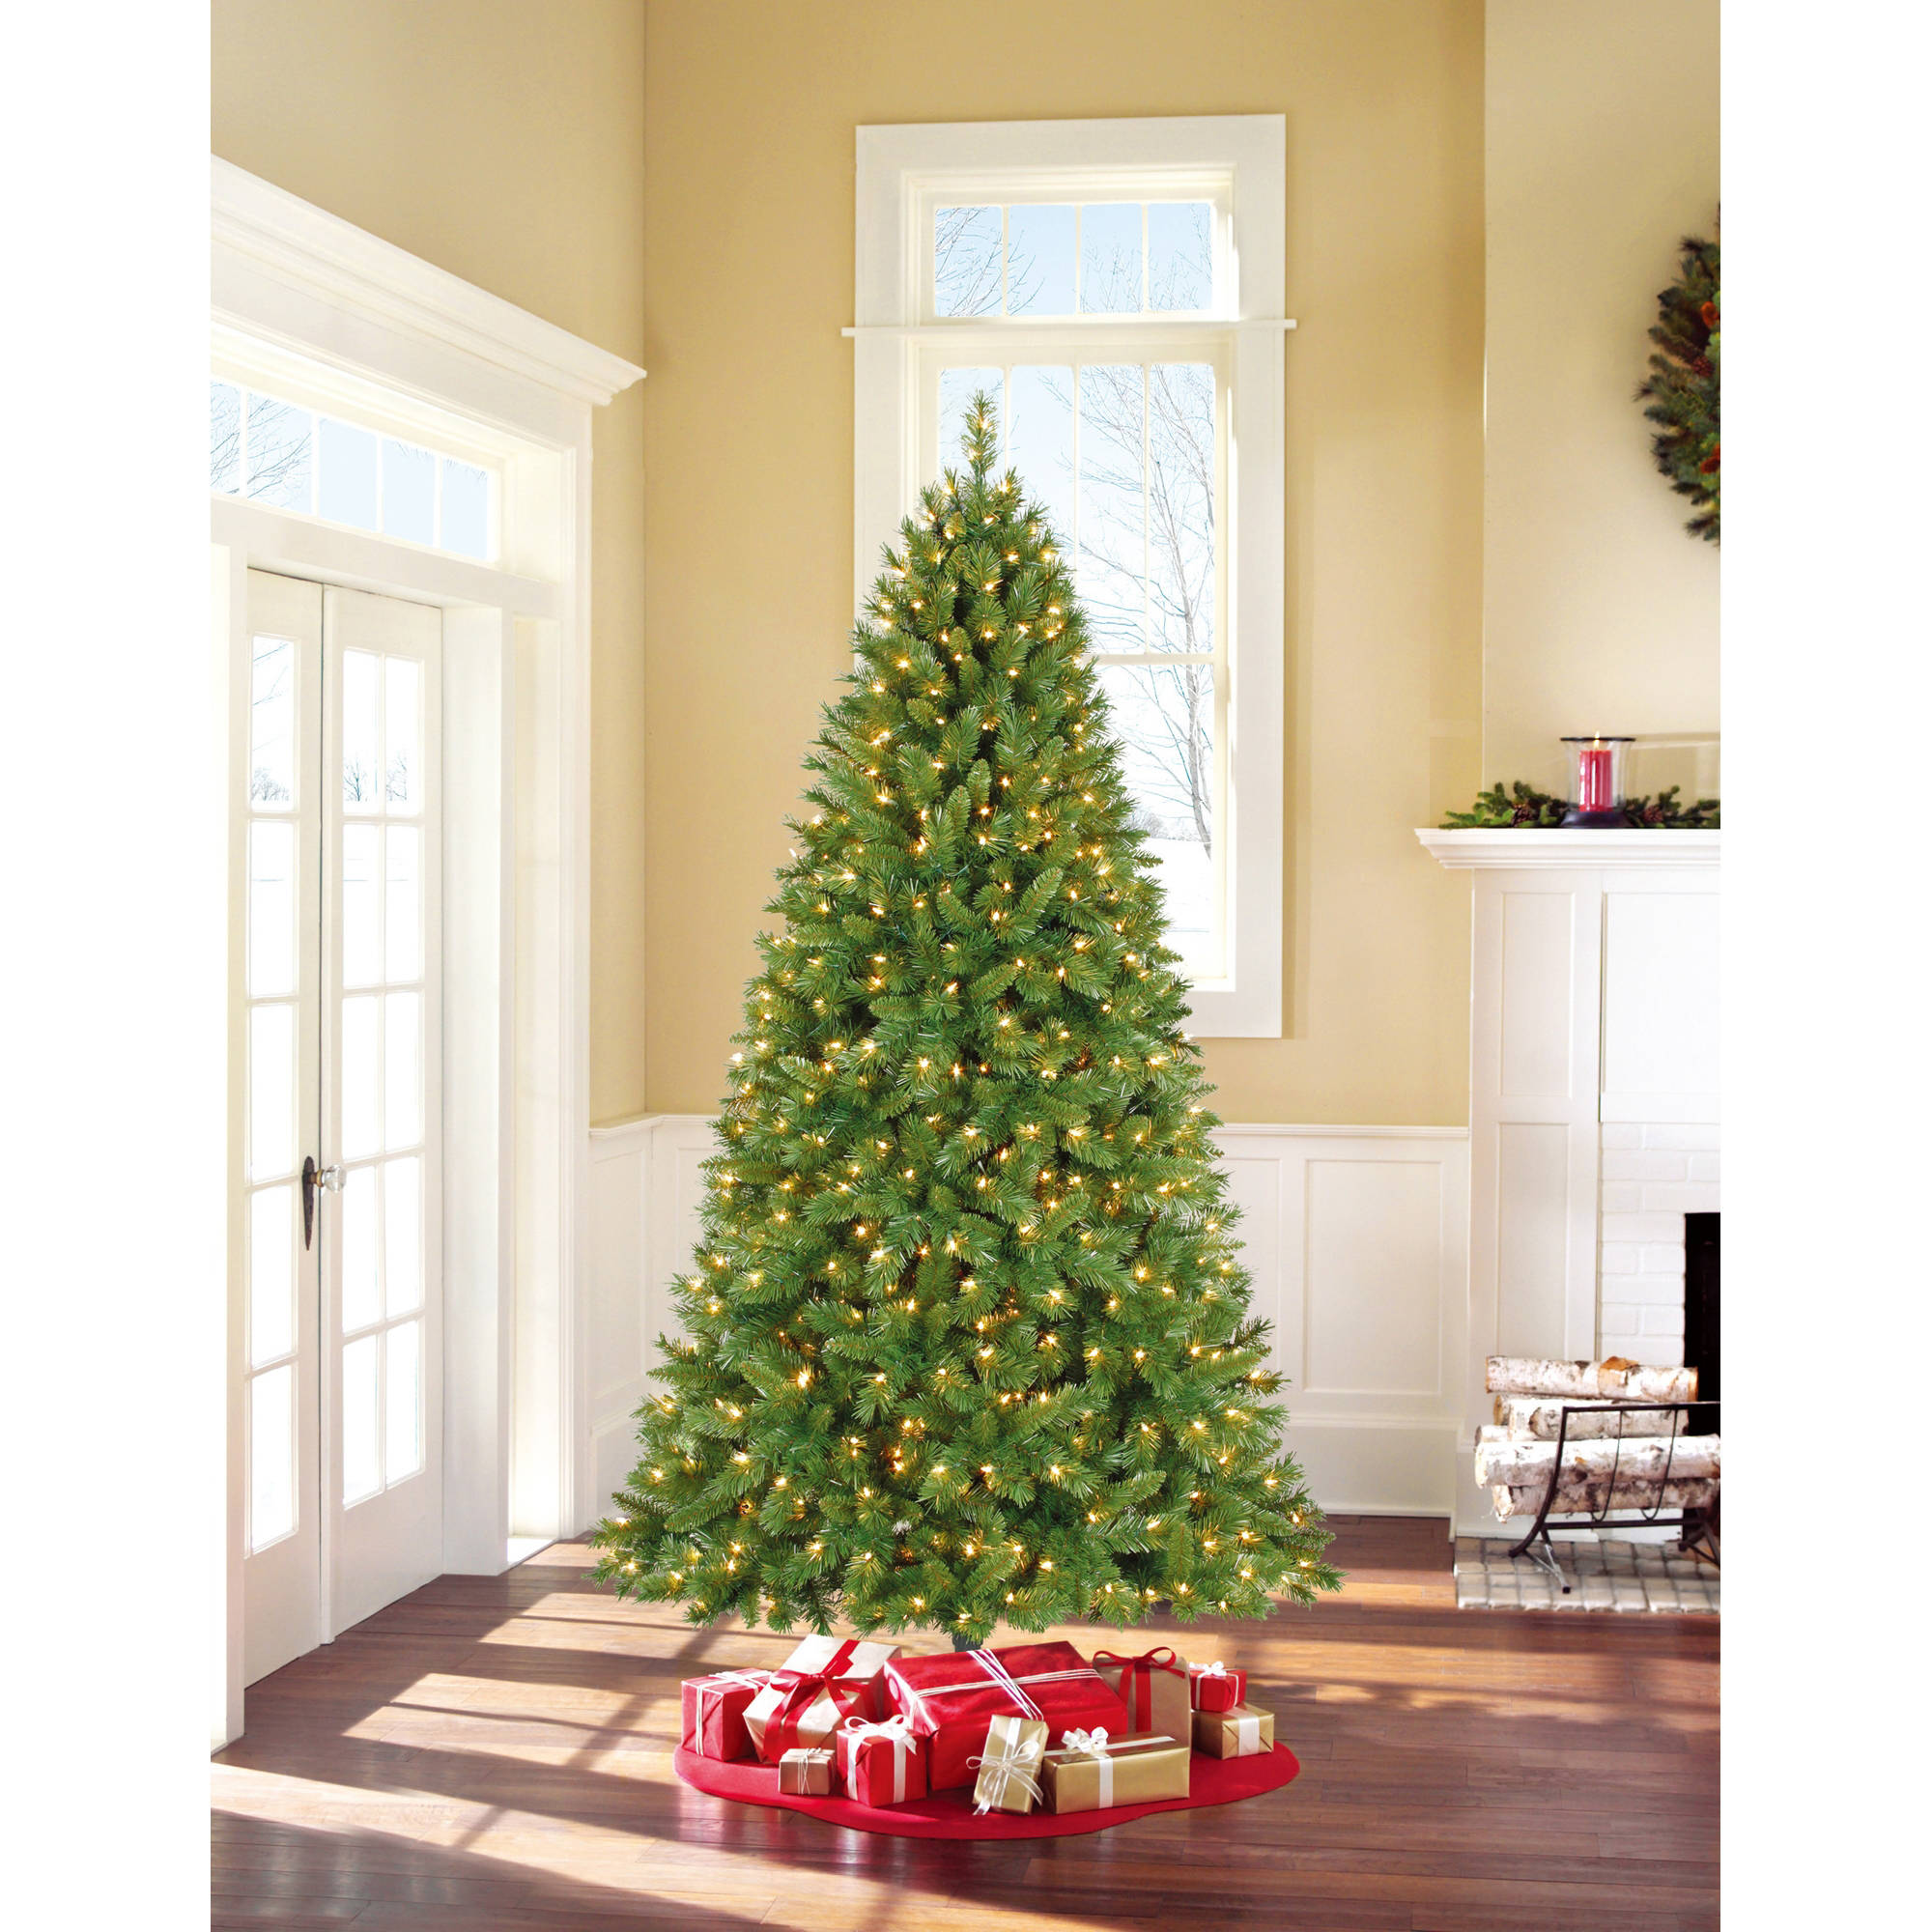 costway 8 ft pre lit artificial christmas tree w450 led lights stand holiday season walmartcom - 9 Pre Lit Christmas Tree